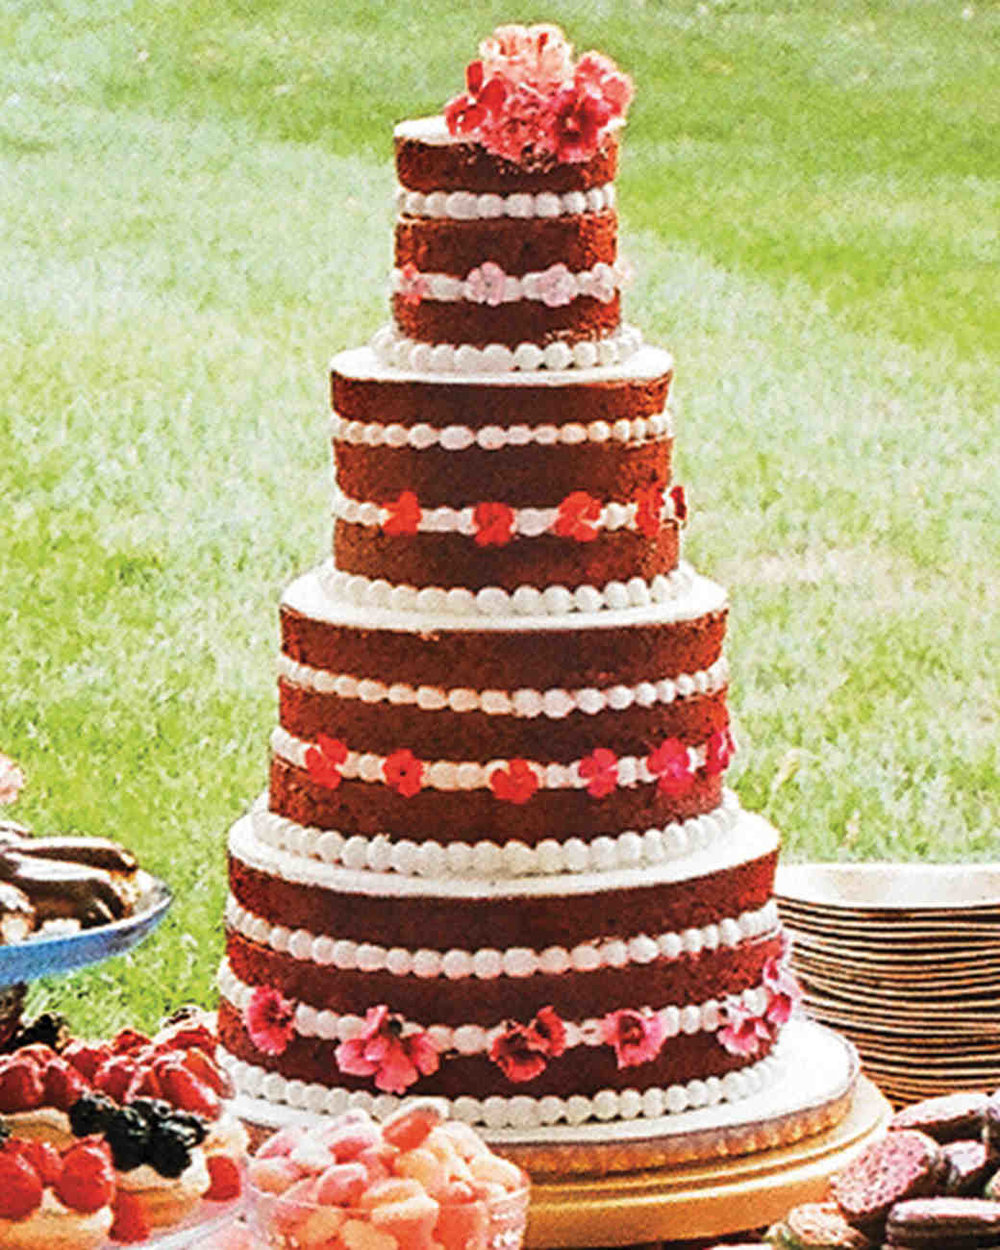 mfiona-peter-wedding-vermont-red-velvet-crop-d112512_vert.jpg